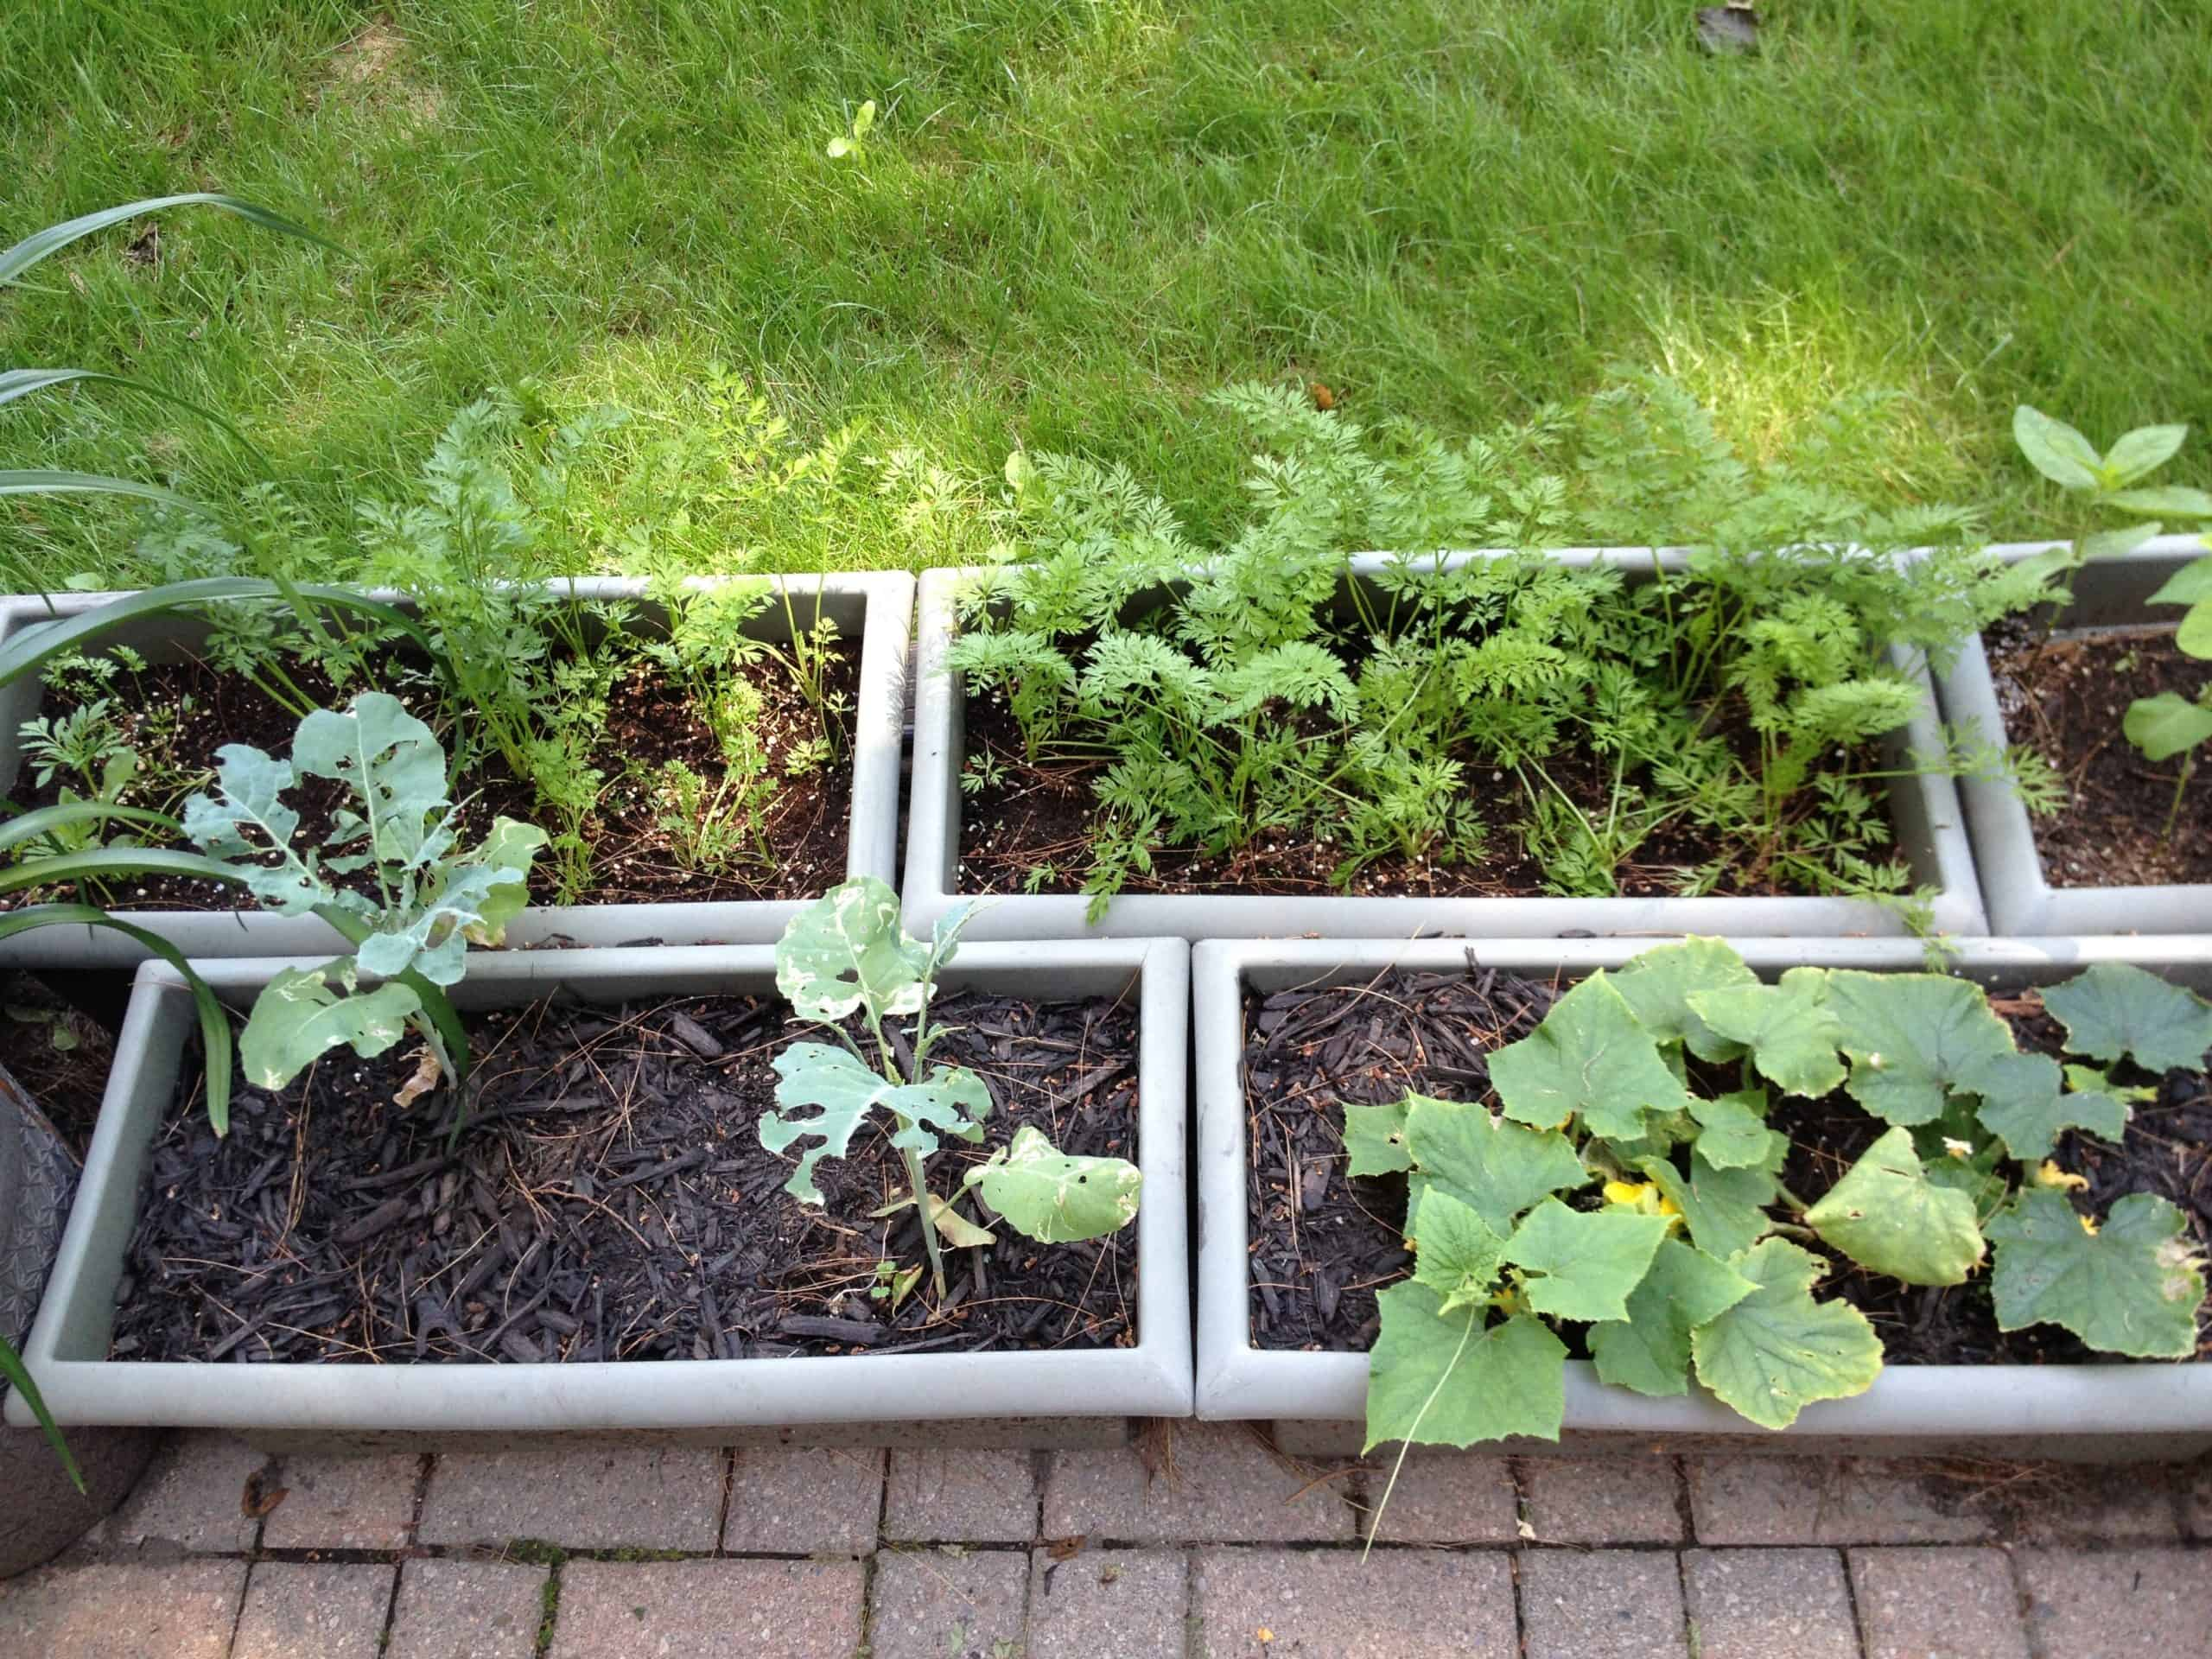 Big, deep window boxes hold 'Romeo' and 'Babette' baby carrots, cucumbers, broccoli, zinnias and edamame.